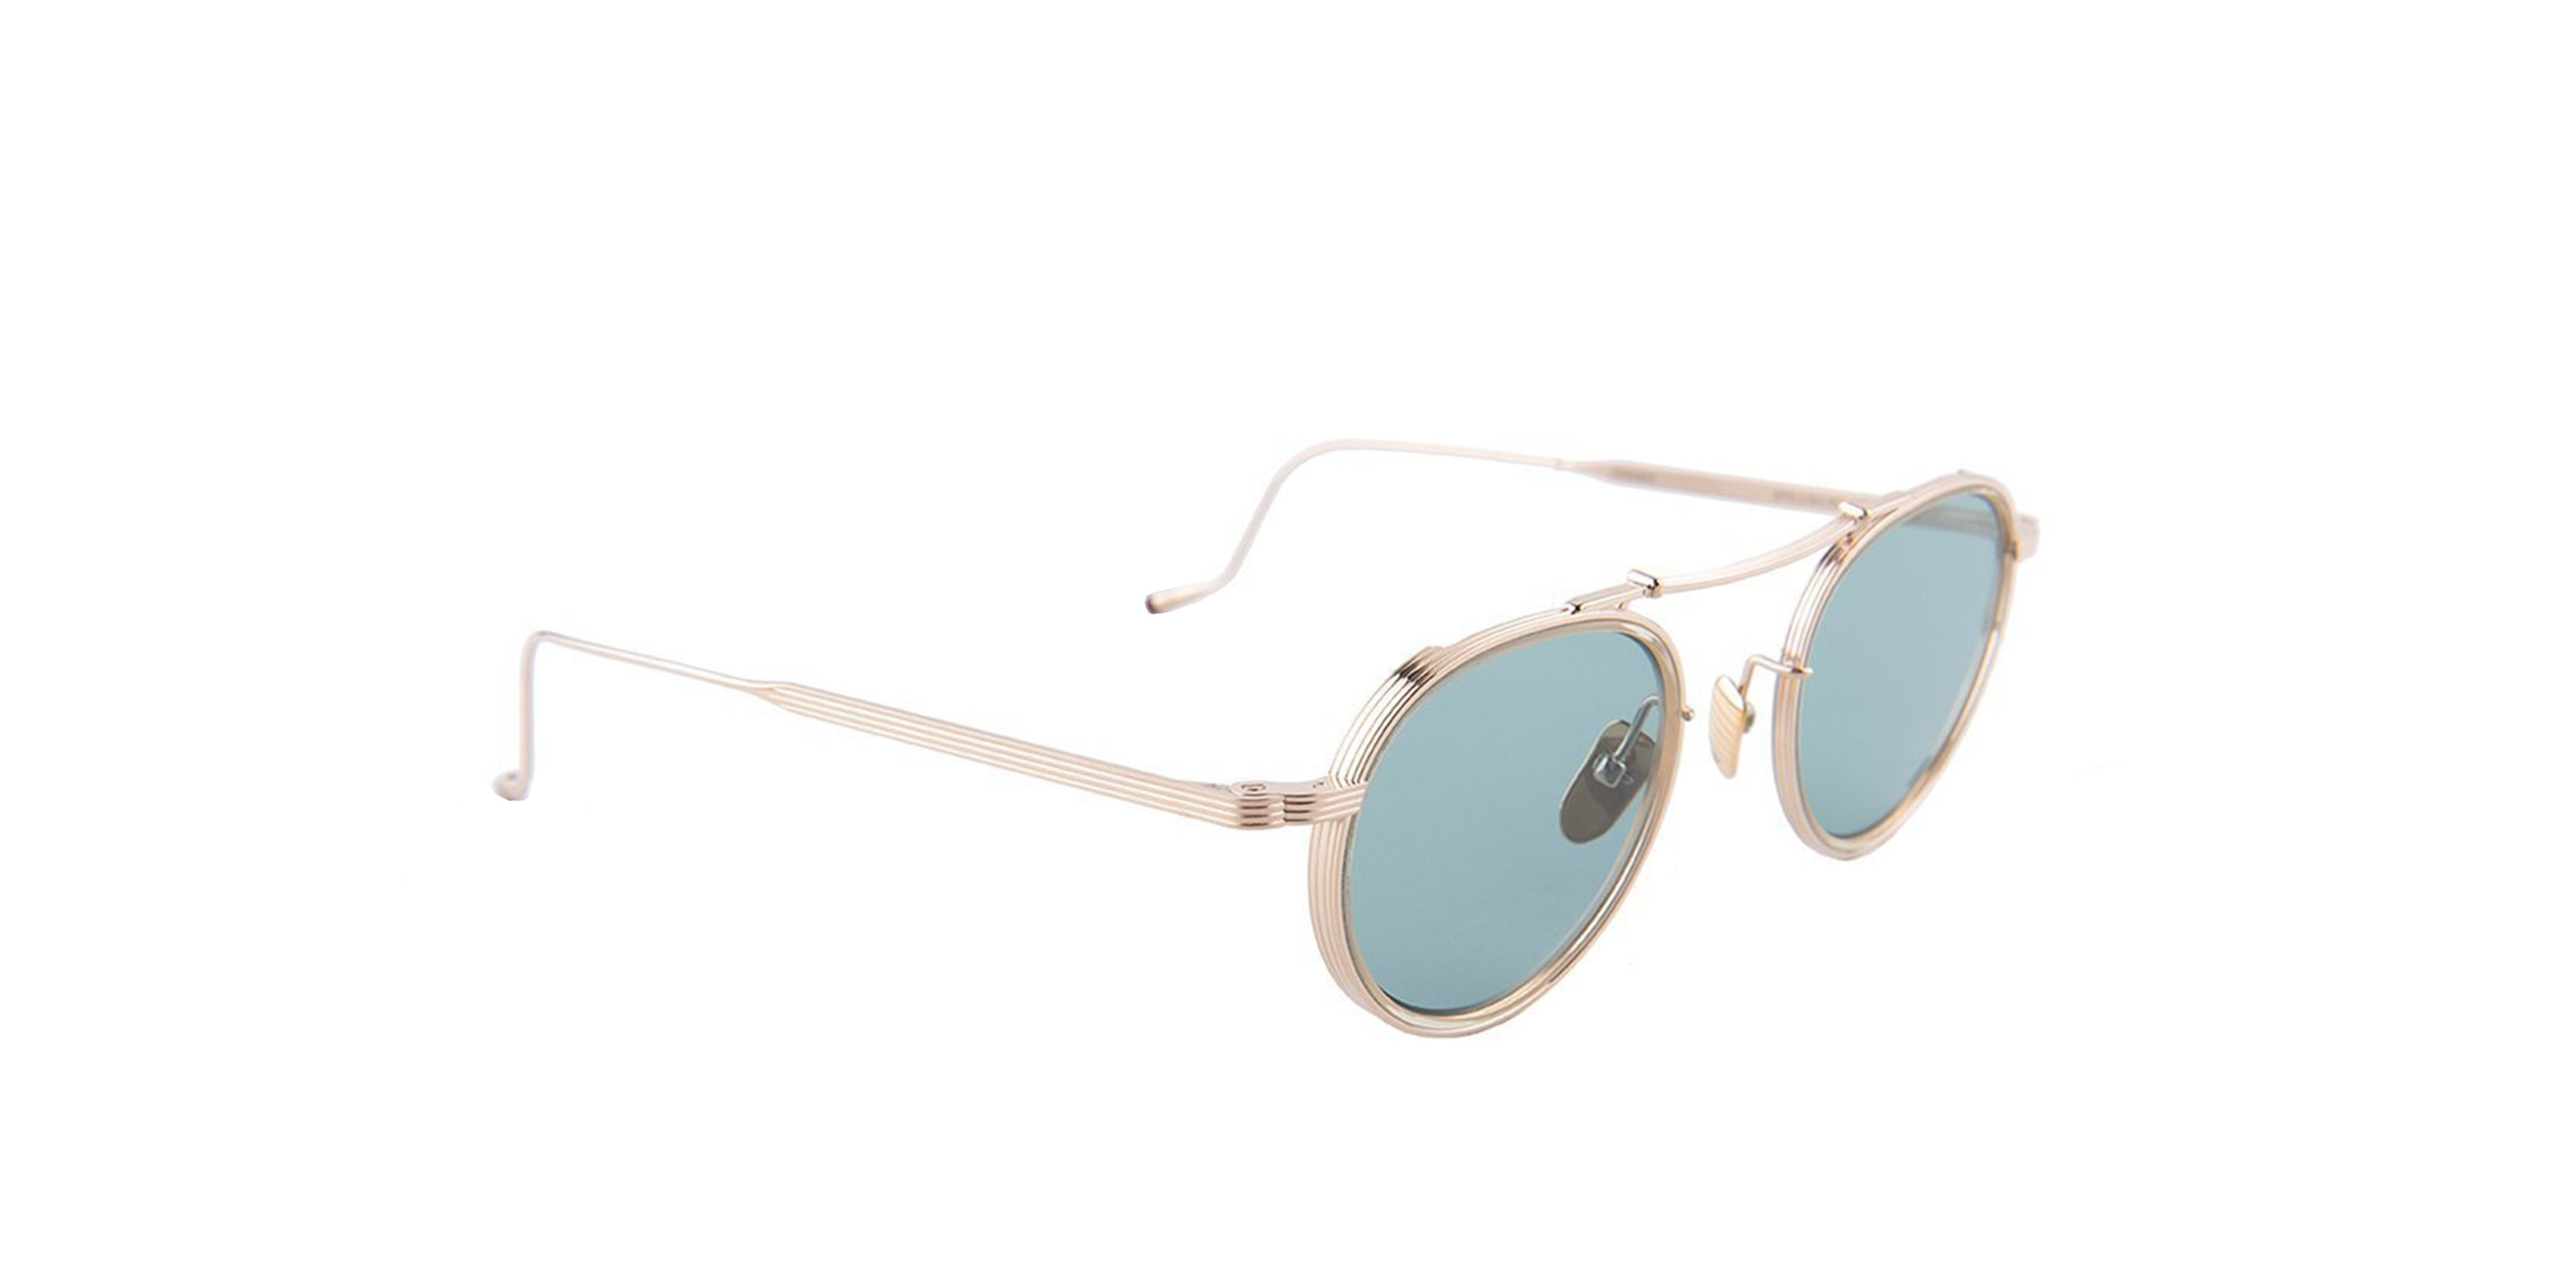 Jacques Marie Mage - Apollinaire Gold/Green Round Unisex Sunglasses - 48mm-Sunglasses-Designer Eyes